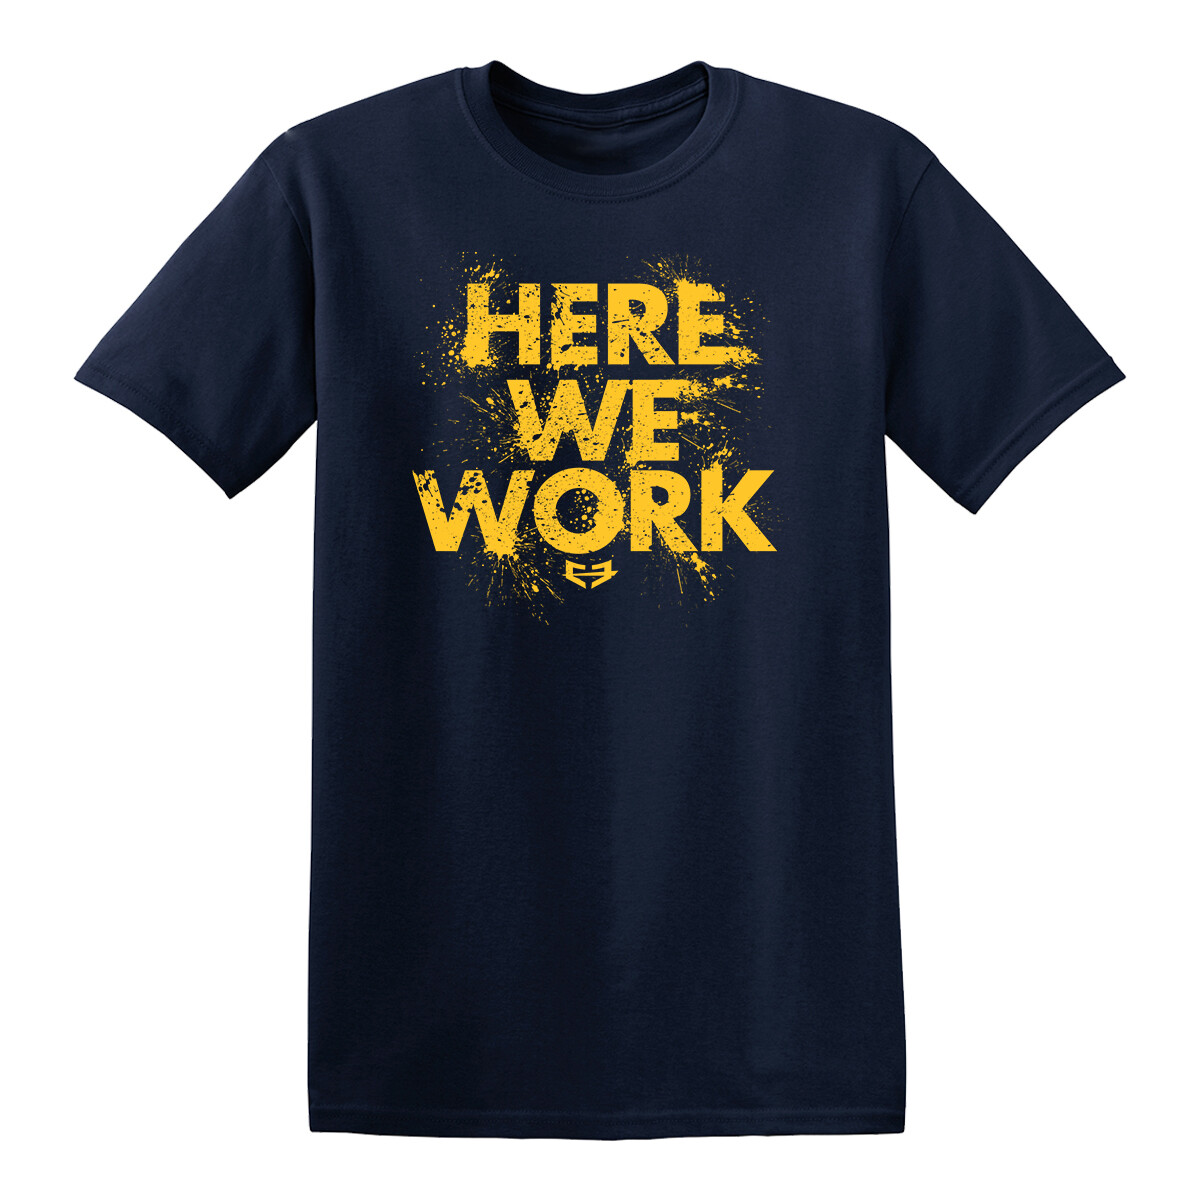 HERE WE WORK GRAPHIC TEE